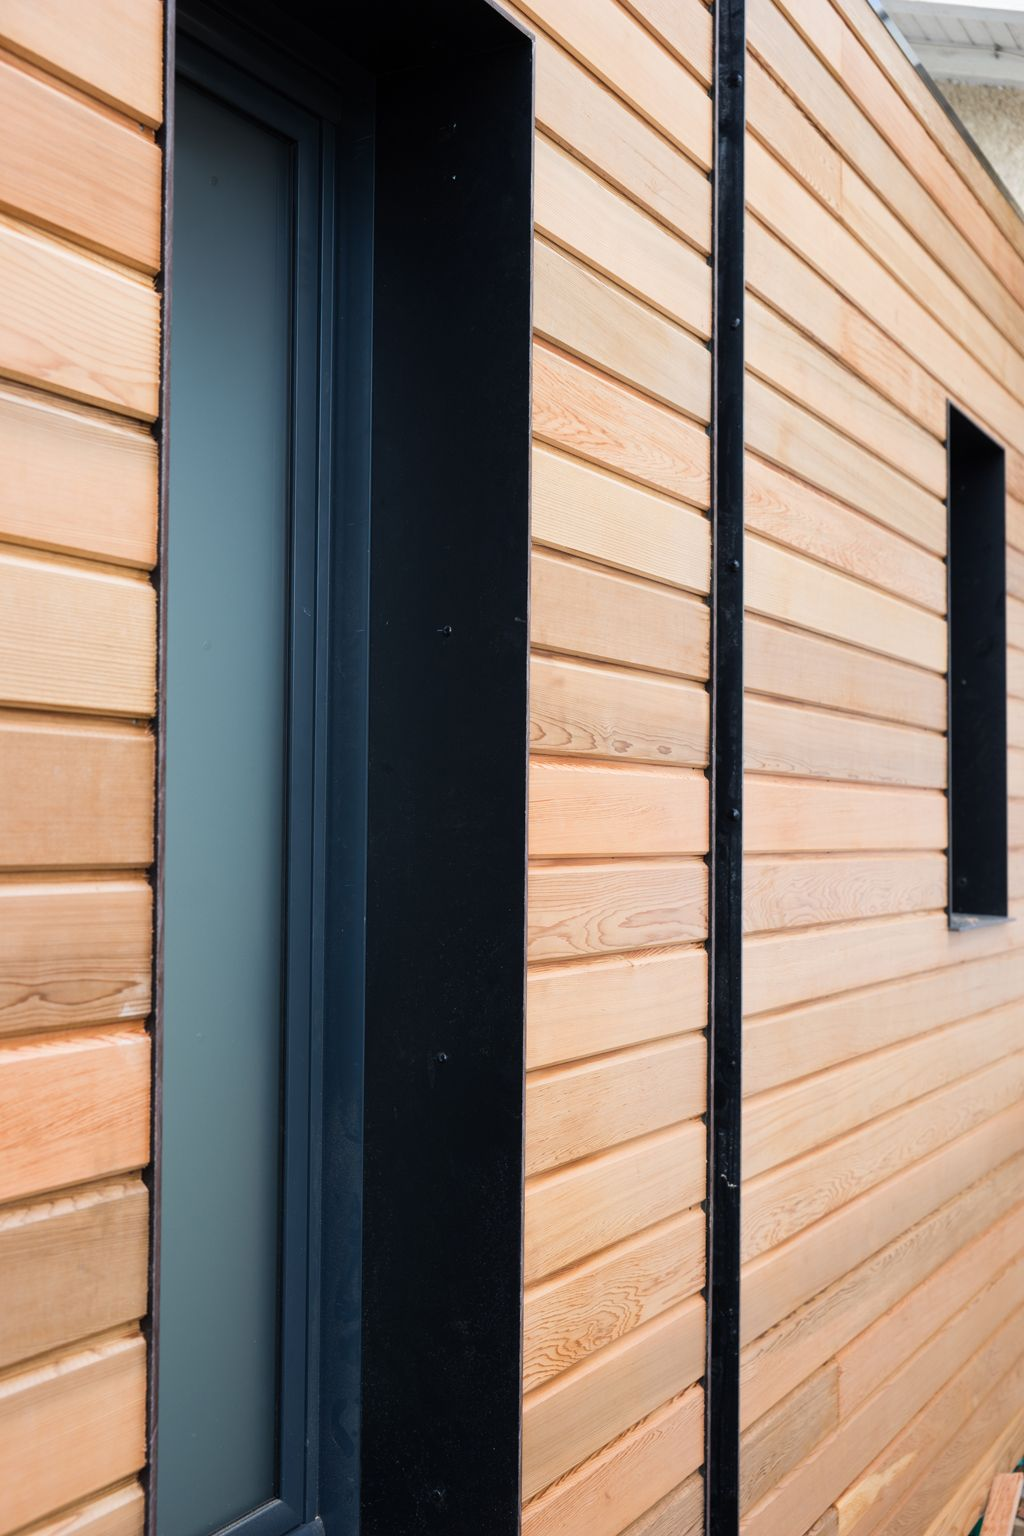 25 best ideas about bardage red cedar on pinterest - Bardage red cedar ...